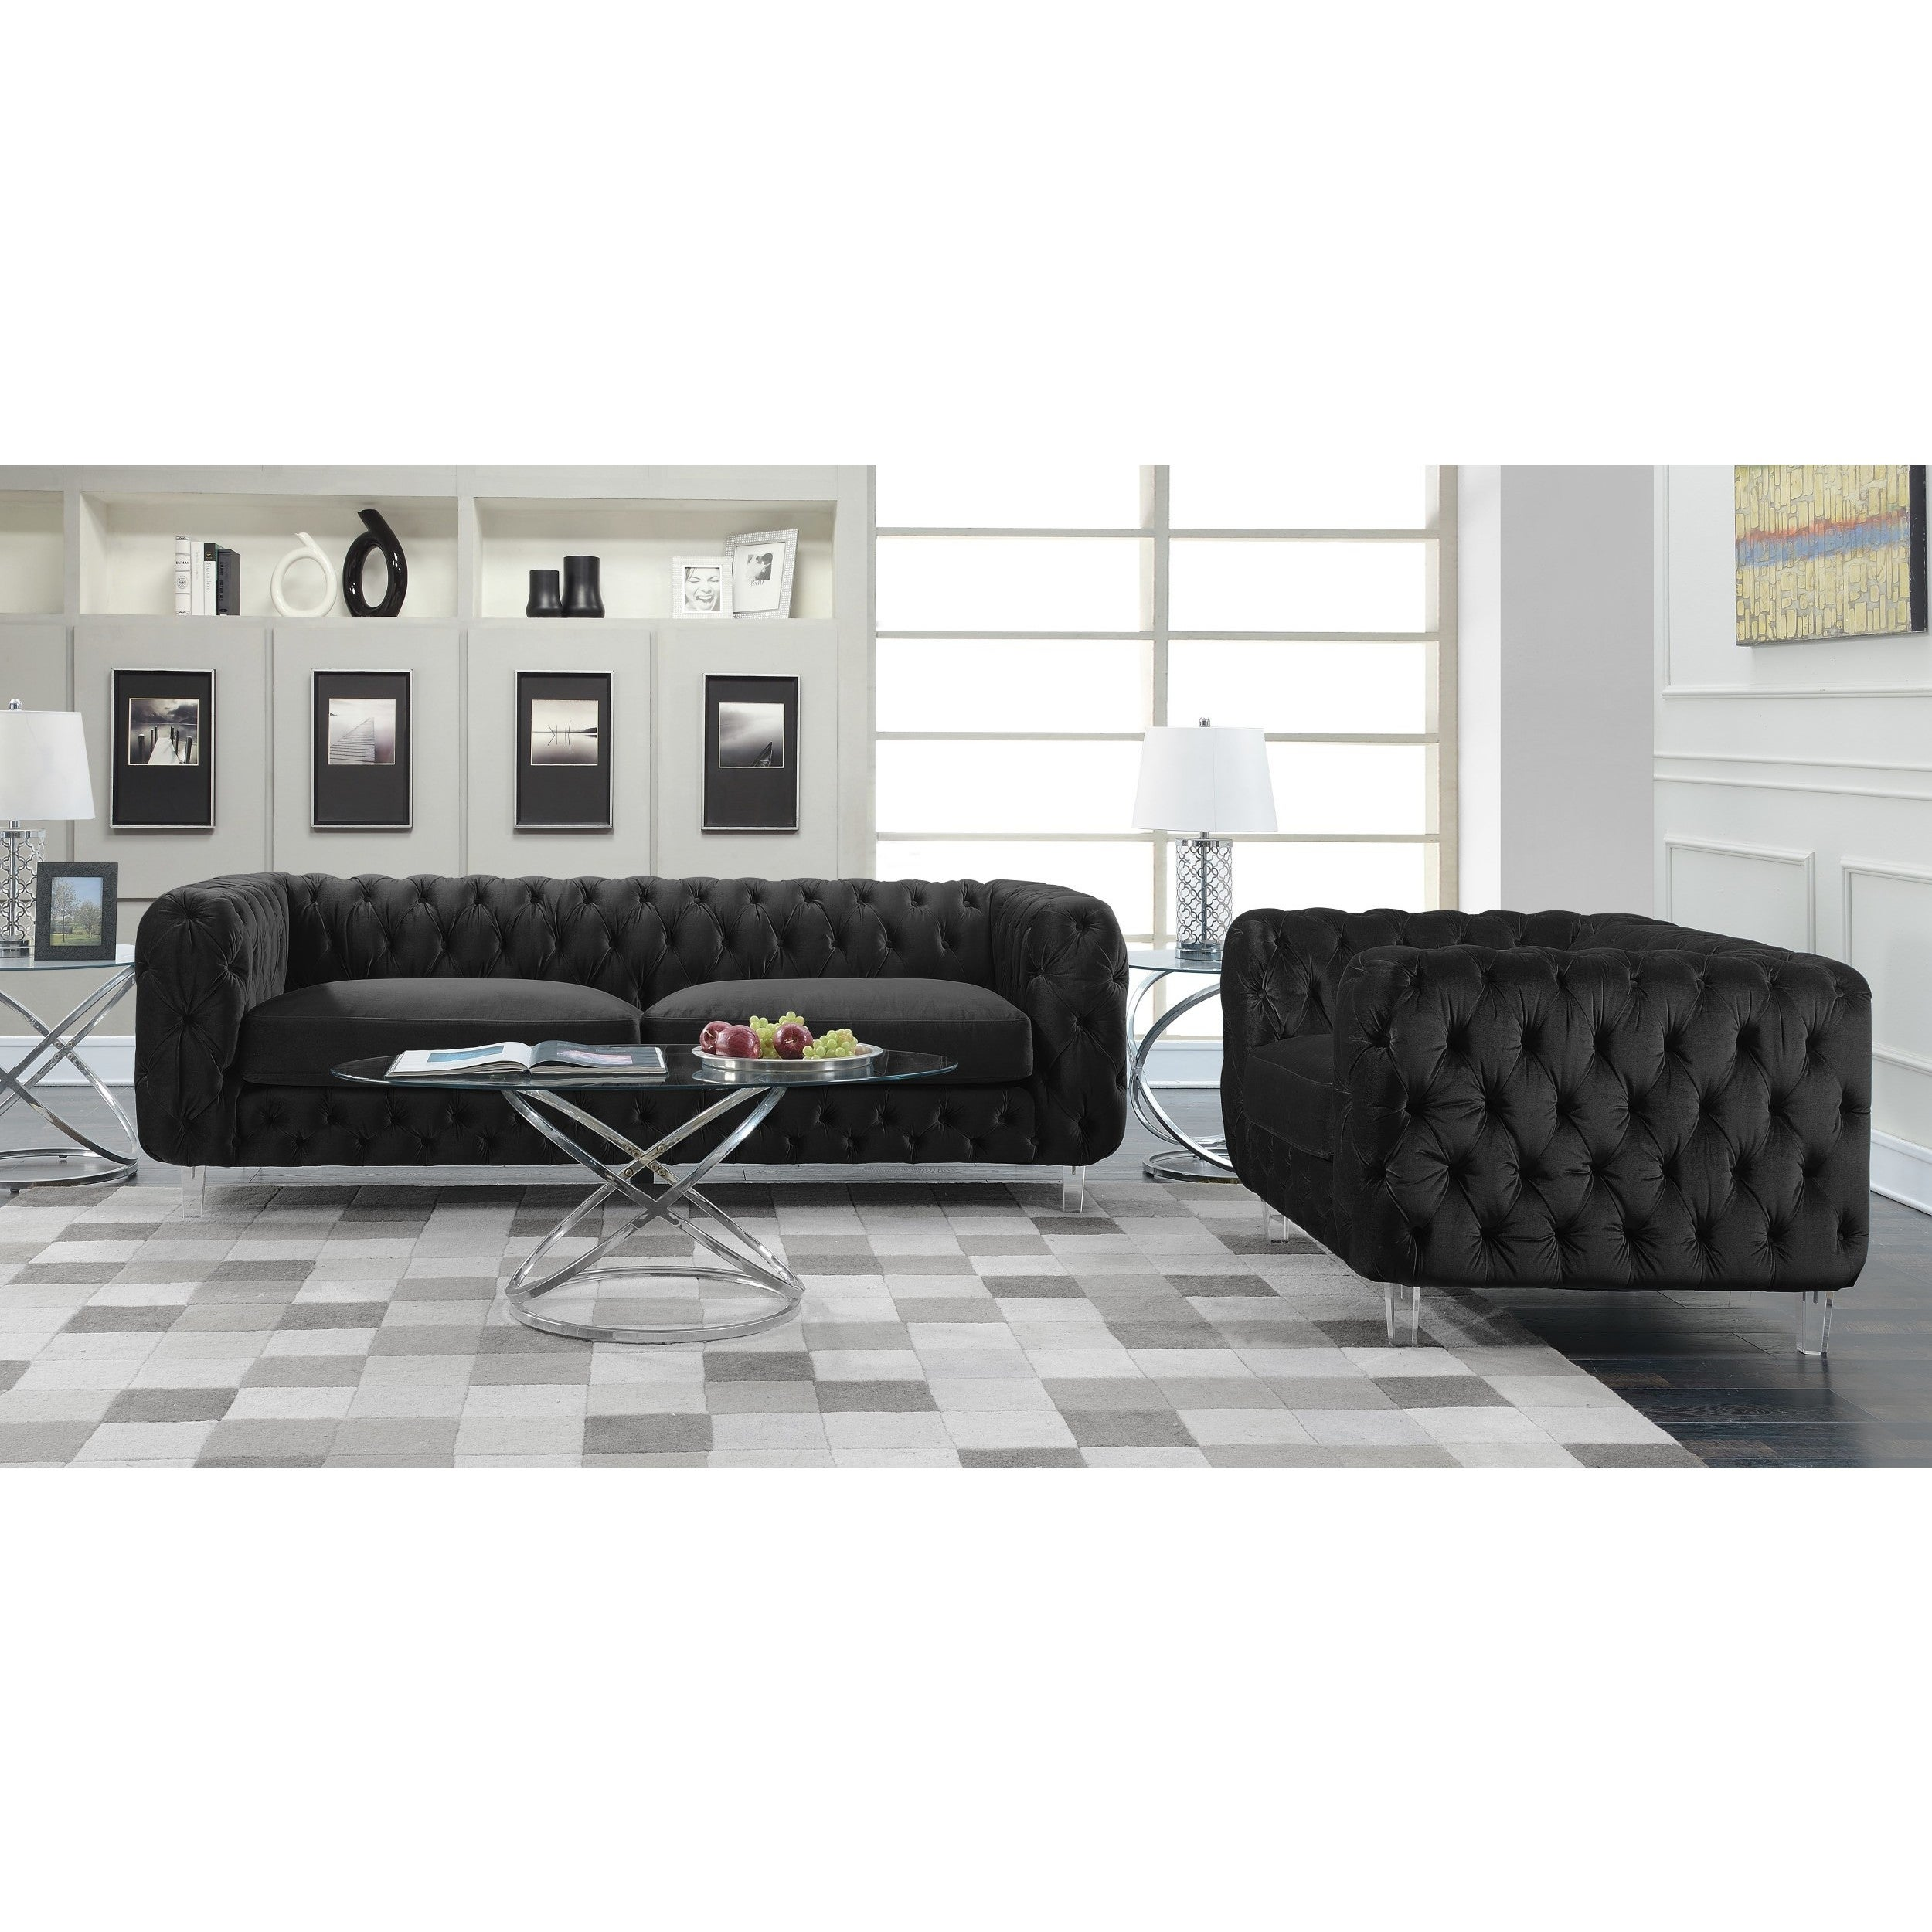 Chic Home Apollo Modern Contemporary Tufted Velvet Down Mix Cushions Sofa On Free Shipping Today 18003816